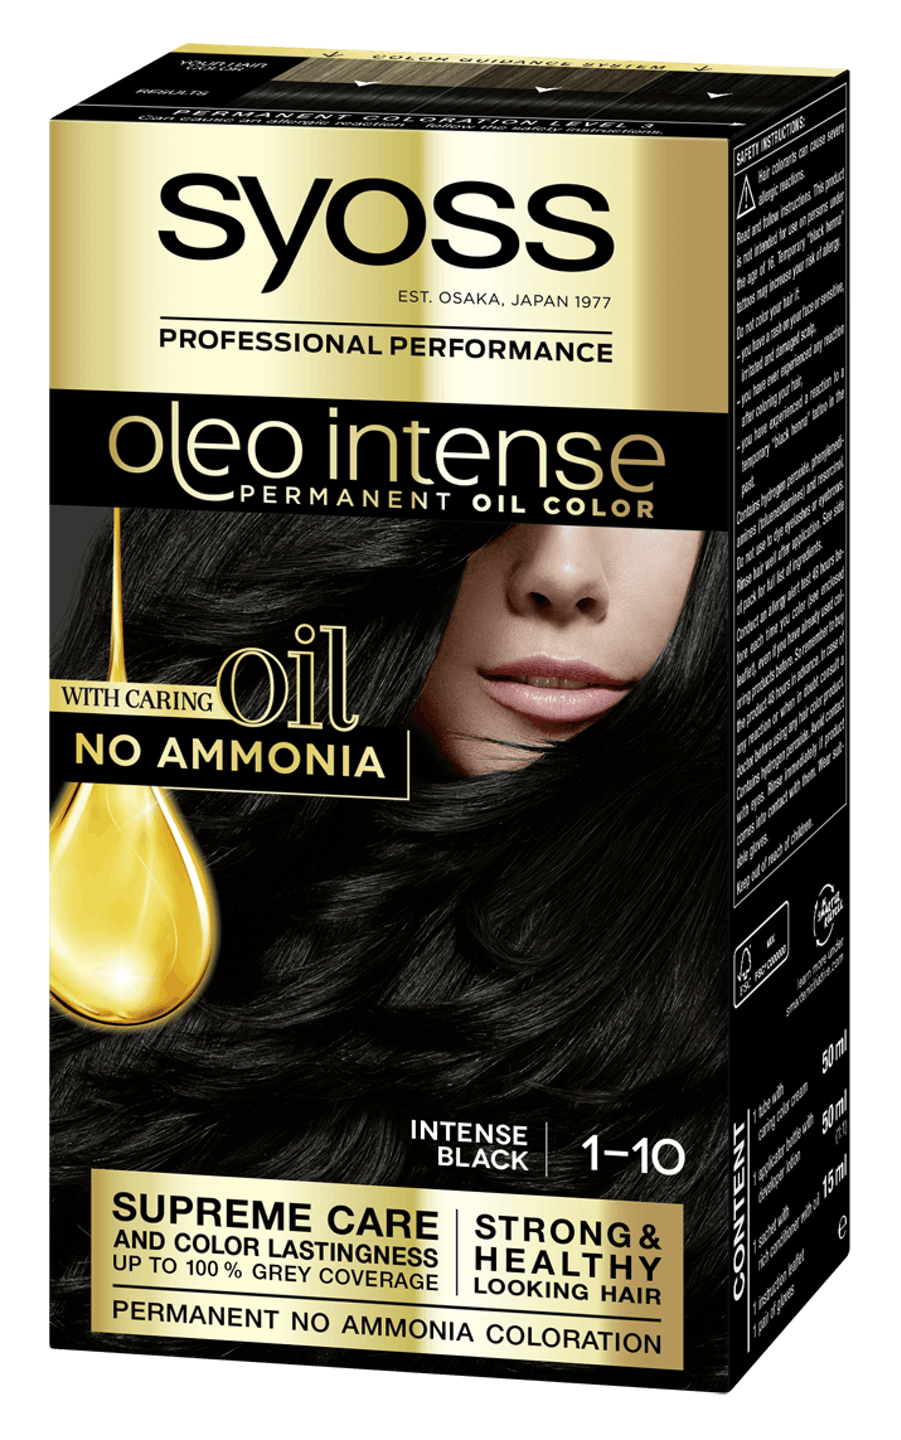 Syoss Oleo Intense Permanent Oil Color 1-10 Intense Black